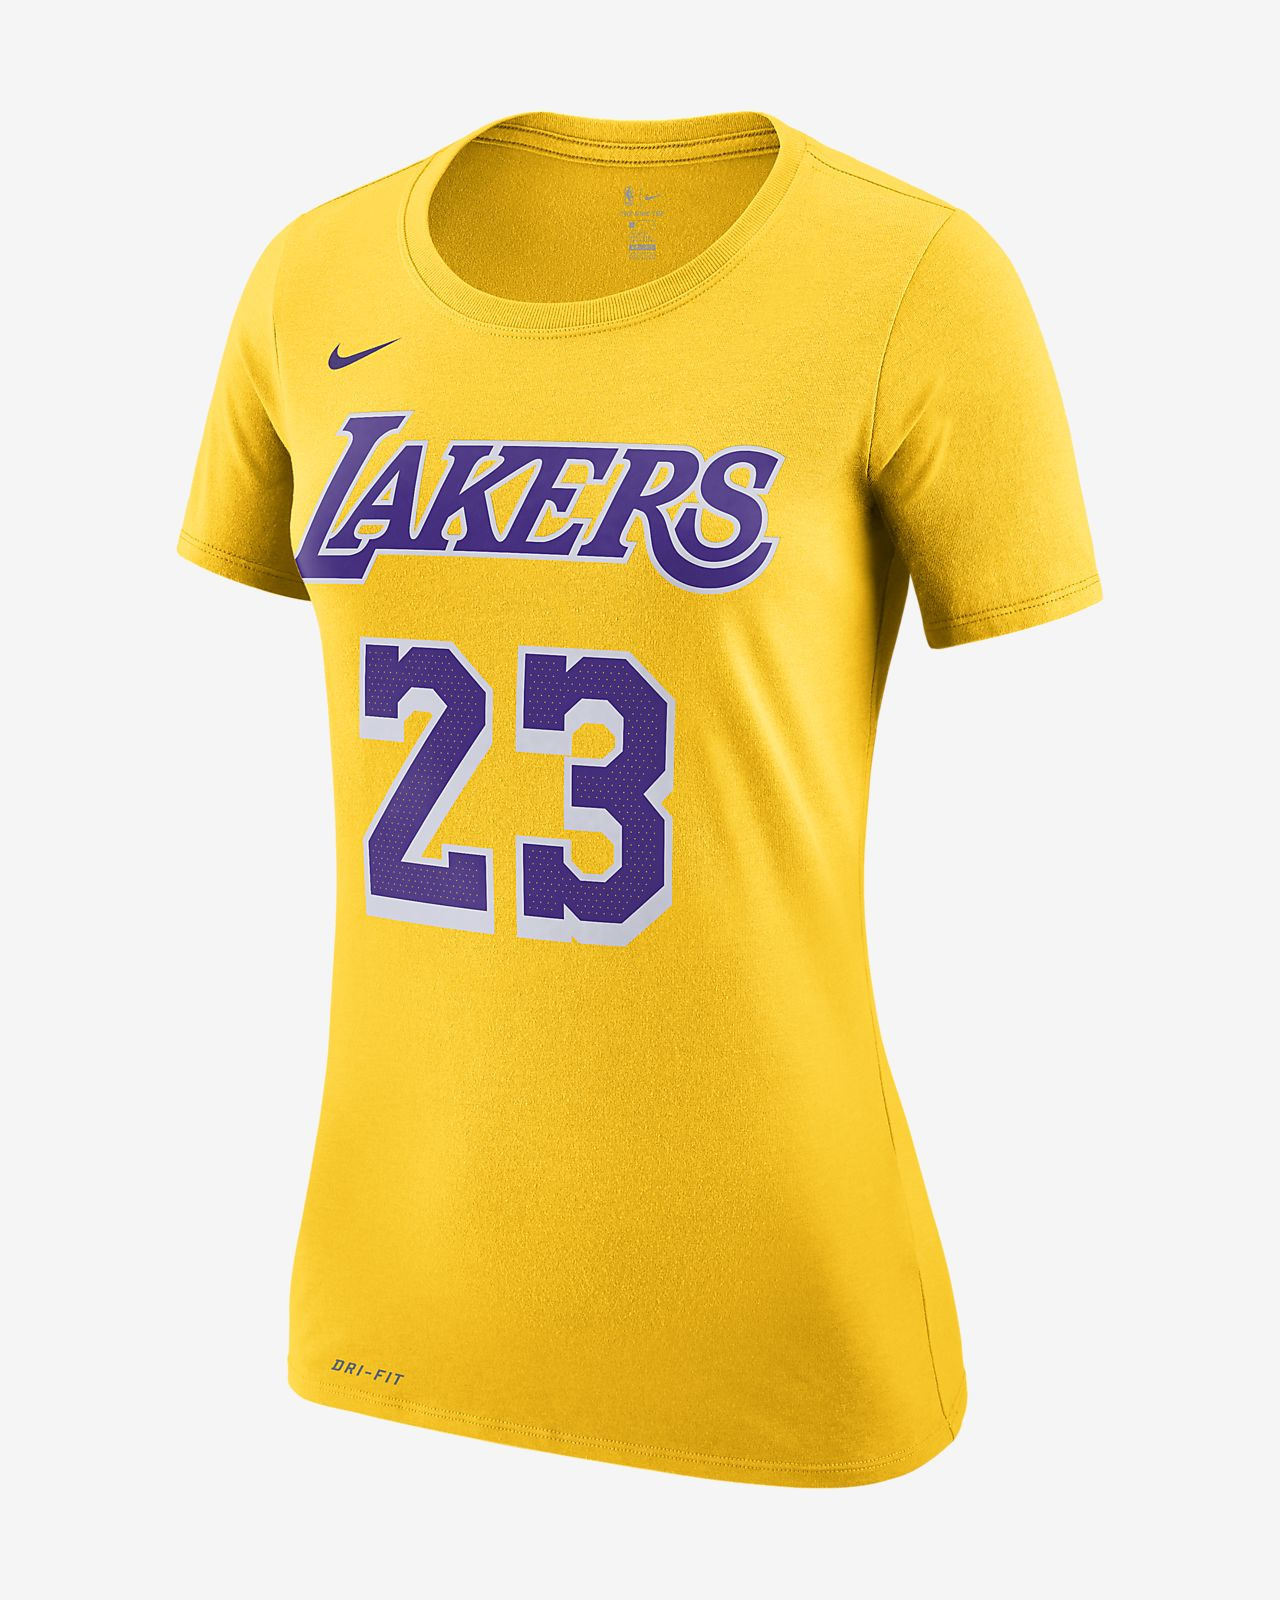 5cd511b42726 LeBron James Los Angeles Lakers Nike Dri-FIT Women s NBA T-Shirt ...